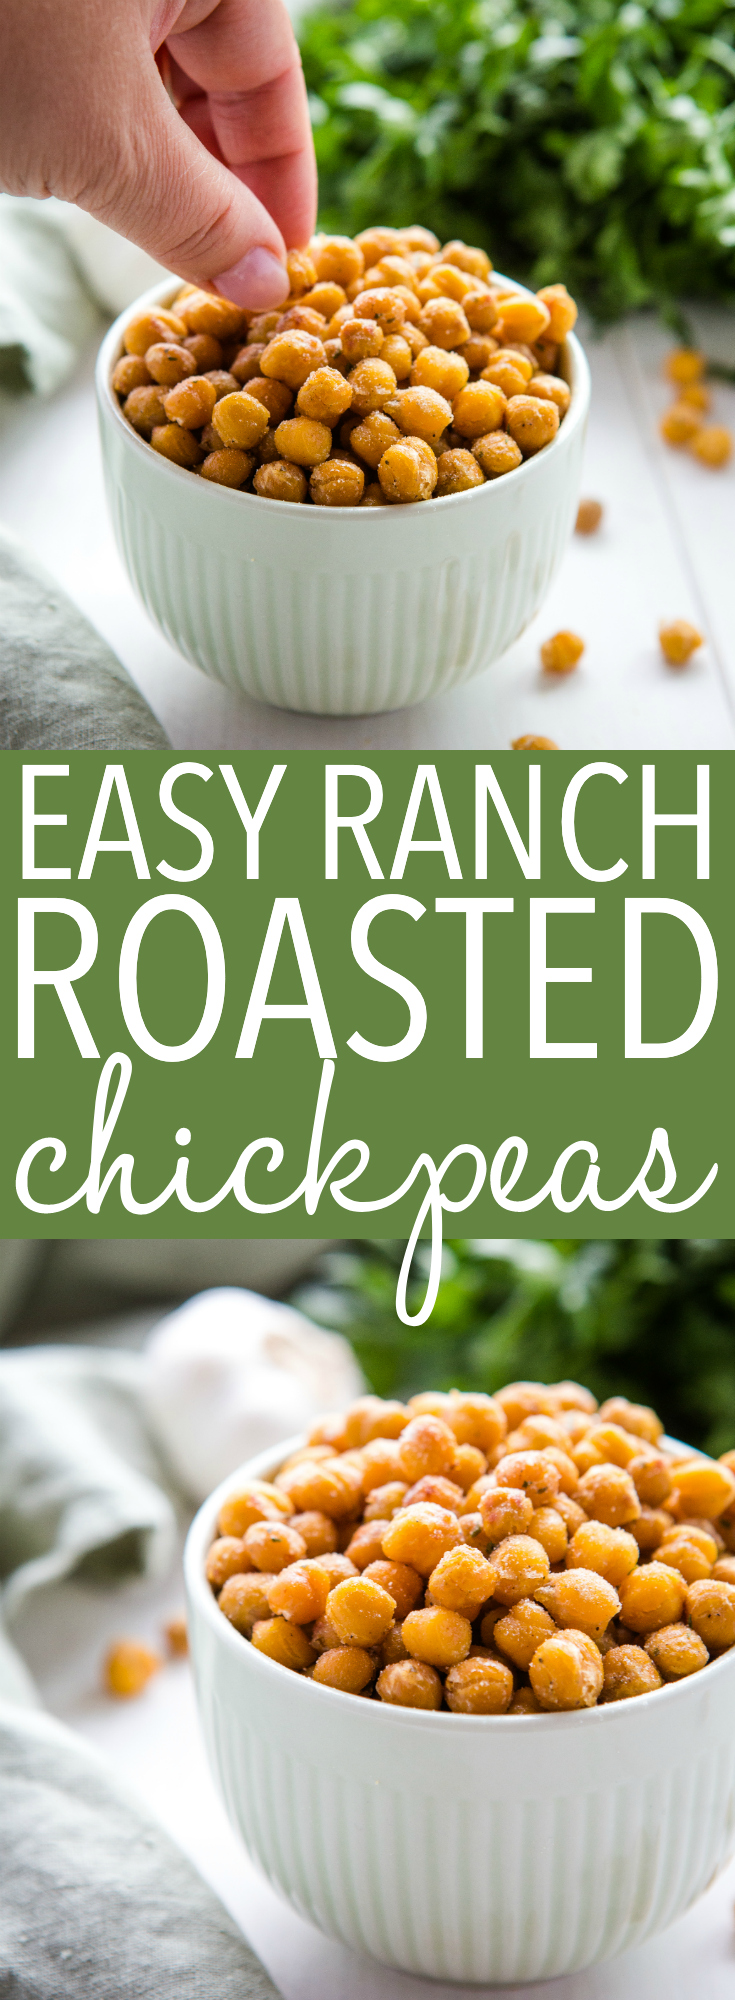 These Easy Ranch Roasted Chickpeas make the perfect healthy, low-fat snack packed with protein! Made with only 3 ingredients!! Recipe from thebusybaker.ca! #ranch #snack #chickpeas #vegetarian #healthy #lowfat #health #roasted via @busybakerblog